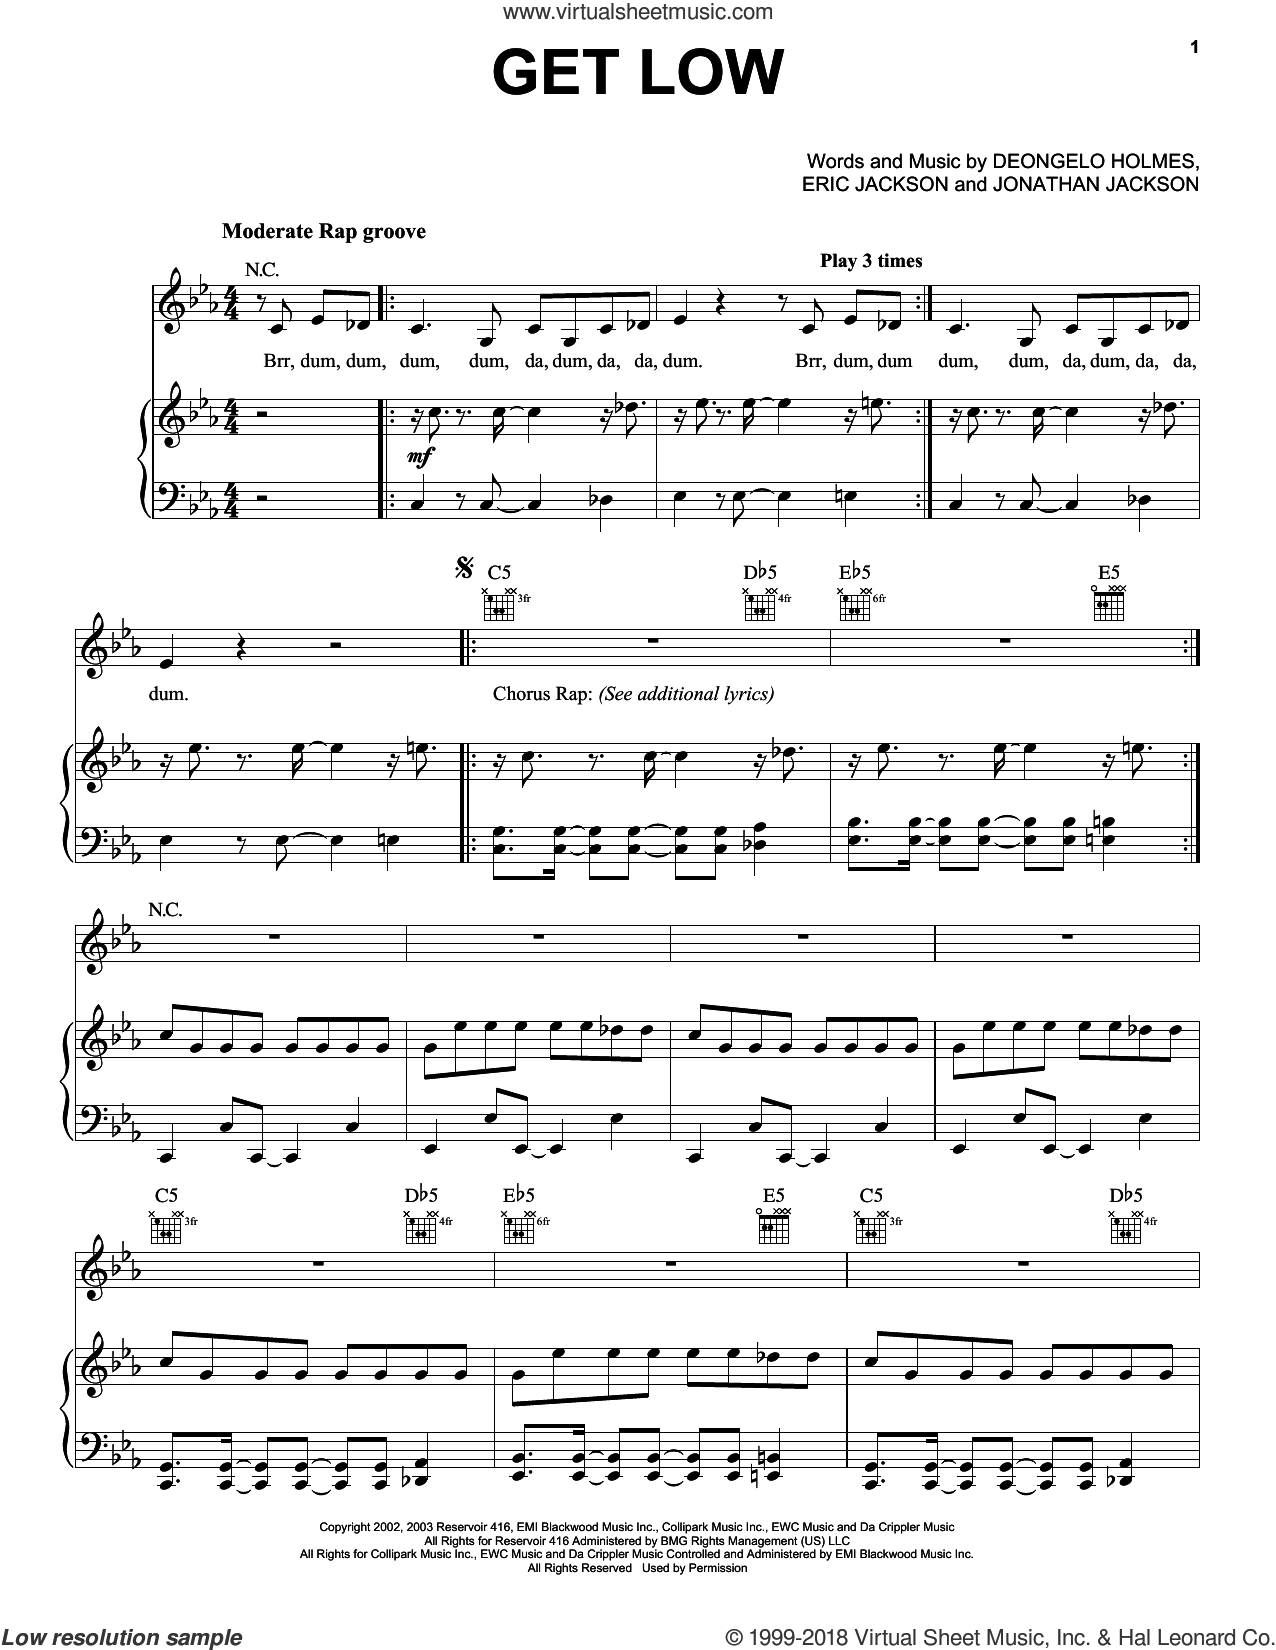 Get Low sheet music for voice, piano or guitar by Lil' Jon and the Eastside Boys, Deongelo Holmes, Eric Jackson and Jonathan Jackson, intermediate skill level